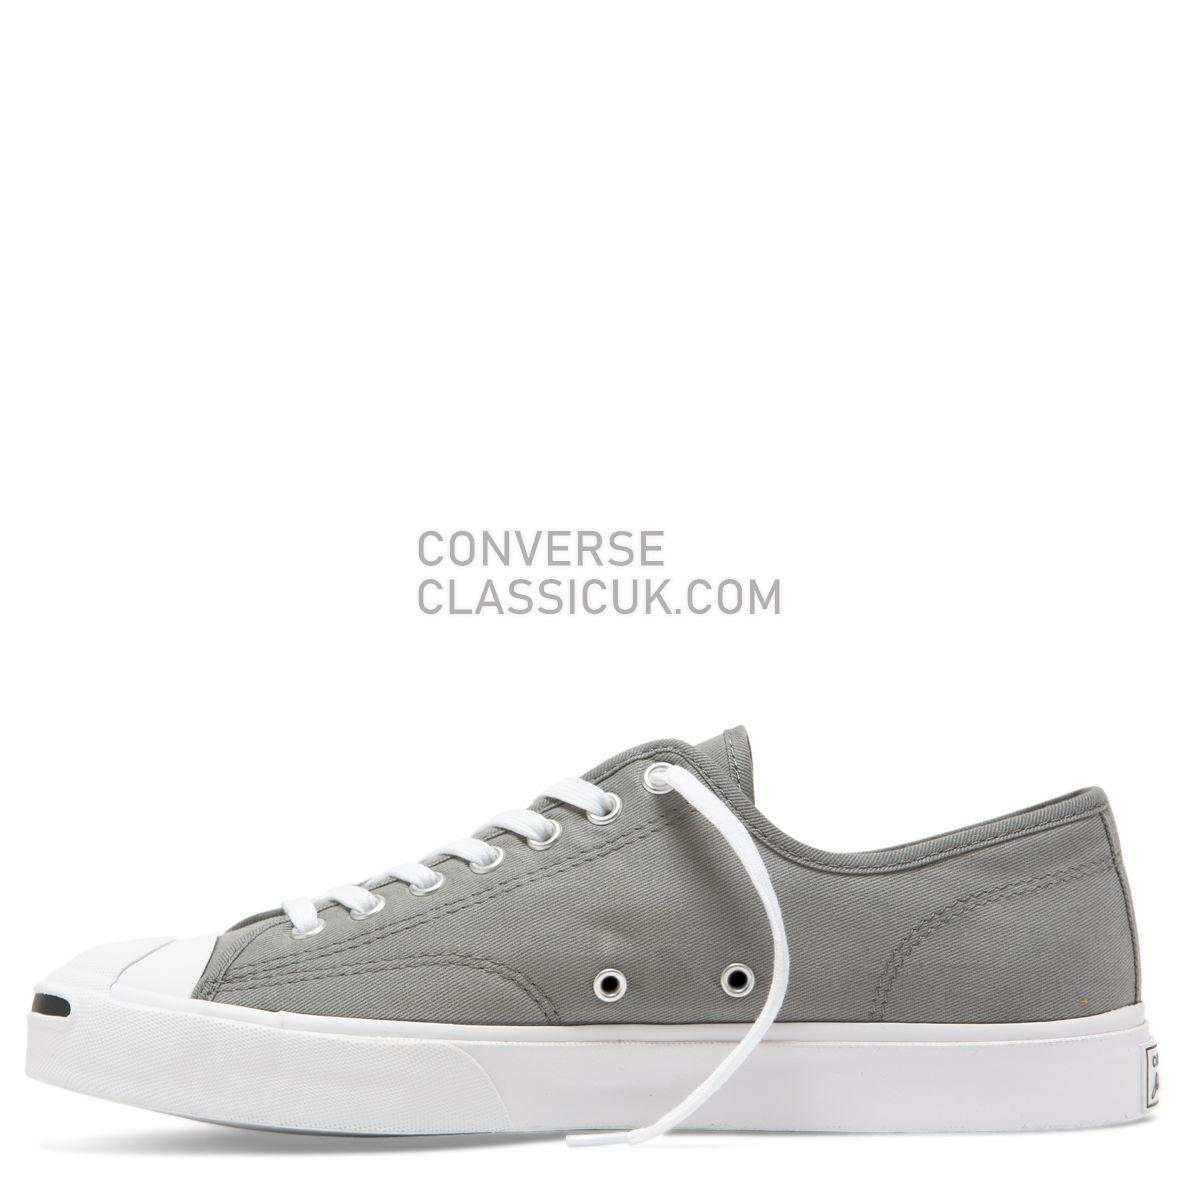 Converse Jack Purcell Twill Low Top Mason Mens 165008 Mason/White/Black Shoes